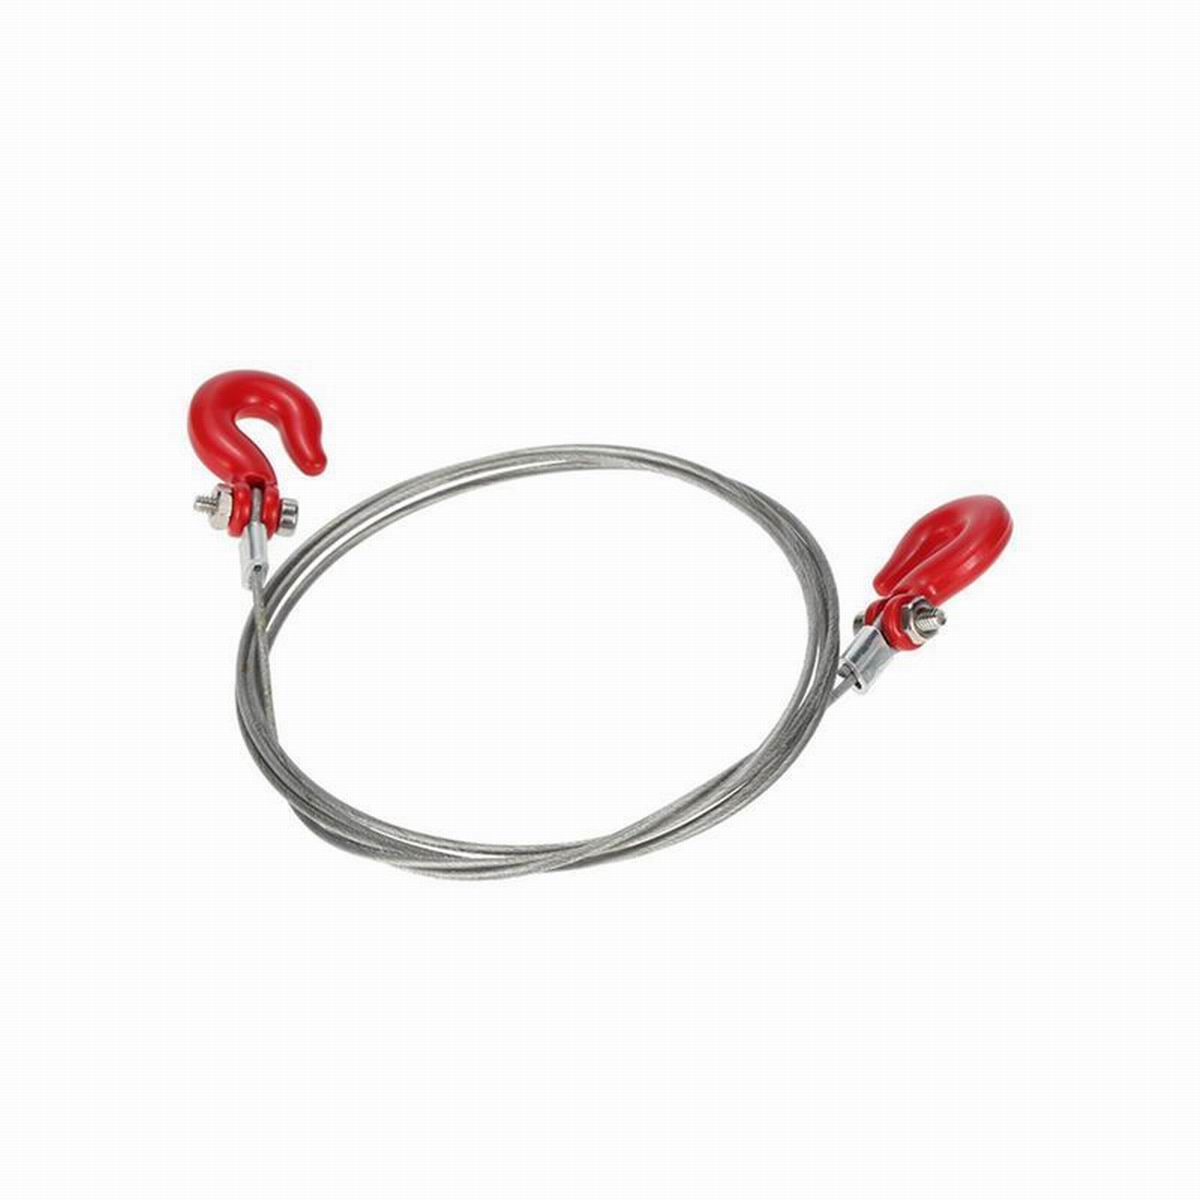 1 10 rc crawler accessories metal steel trailer wire rope tow rope w   hooks for rc car 1  10 d90